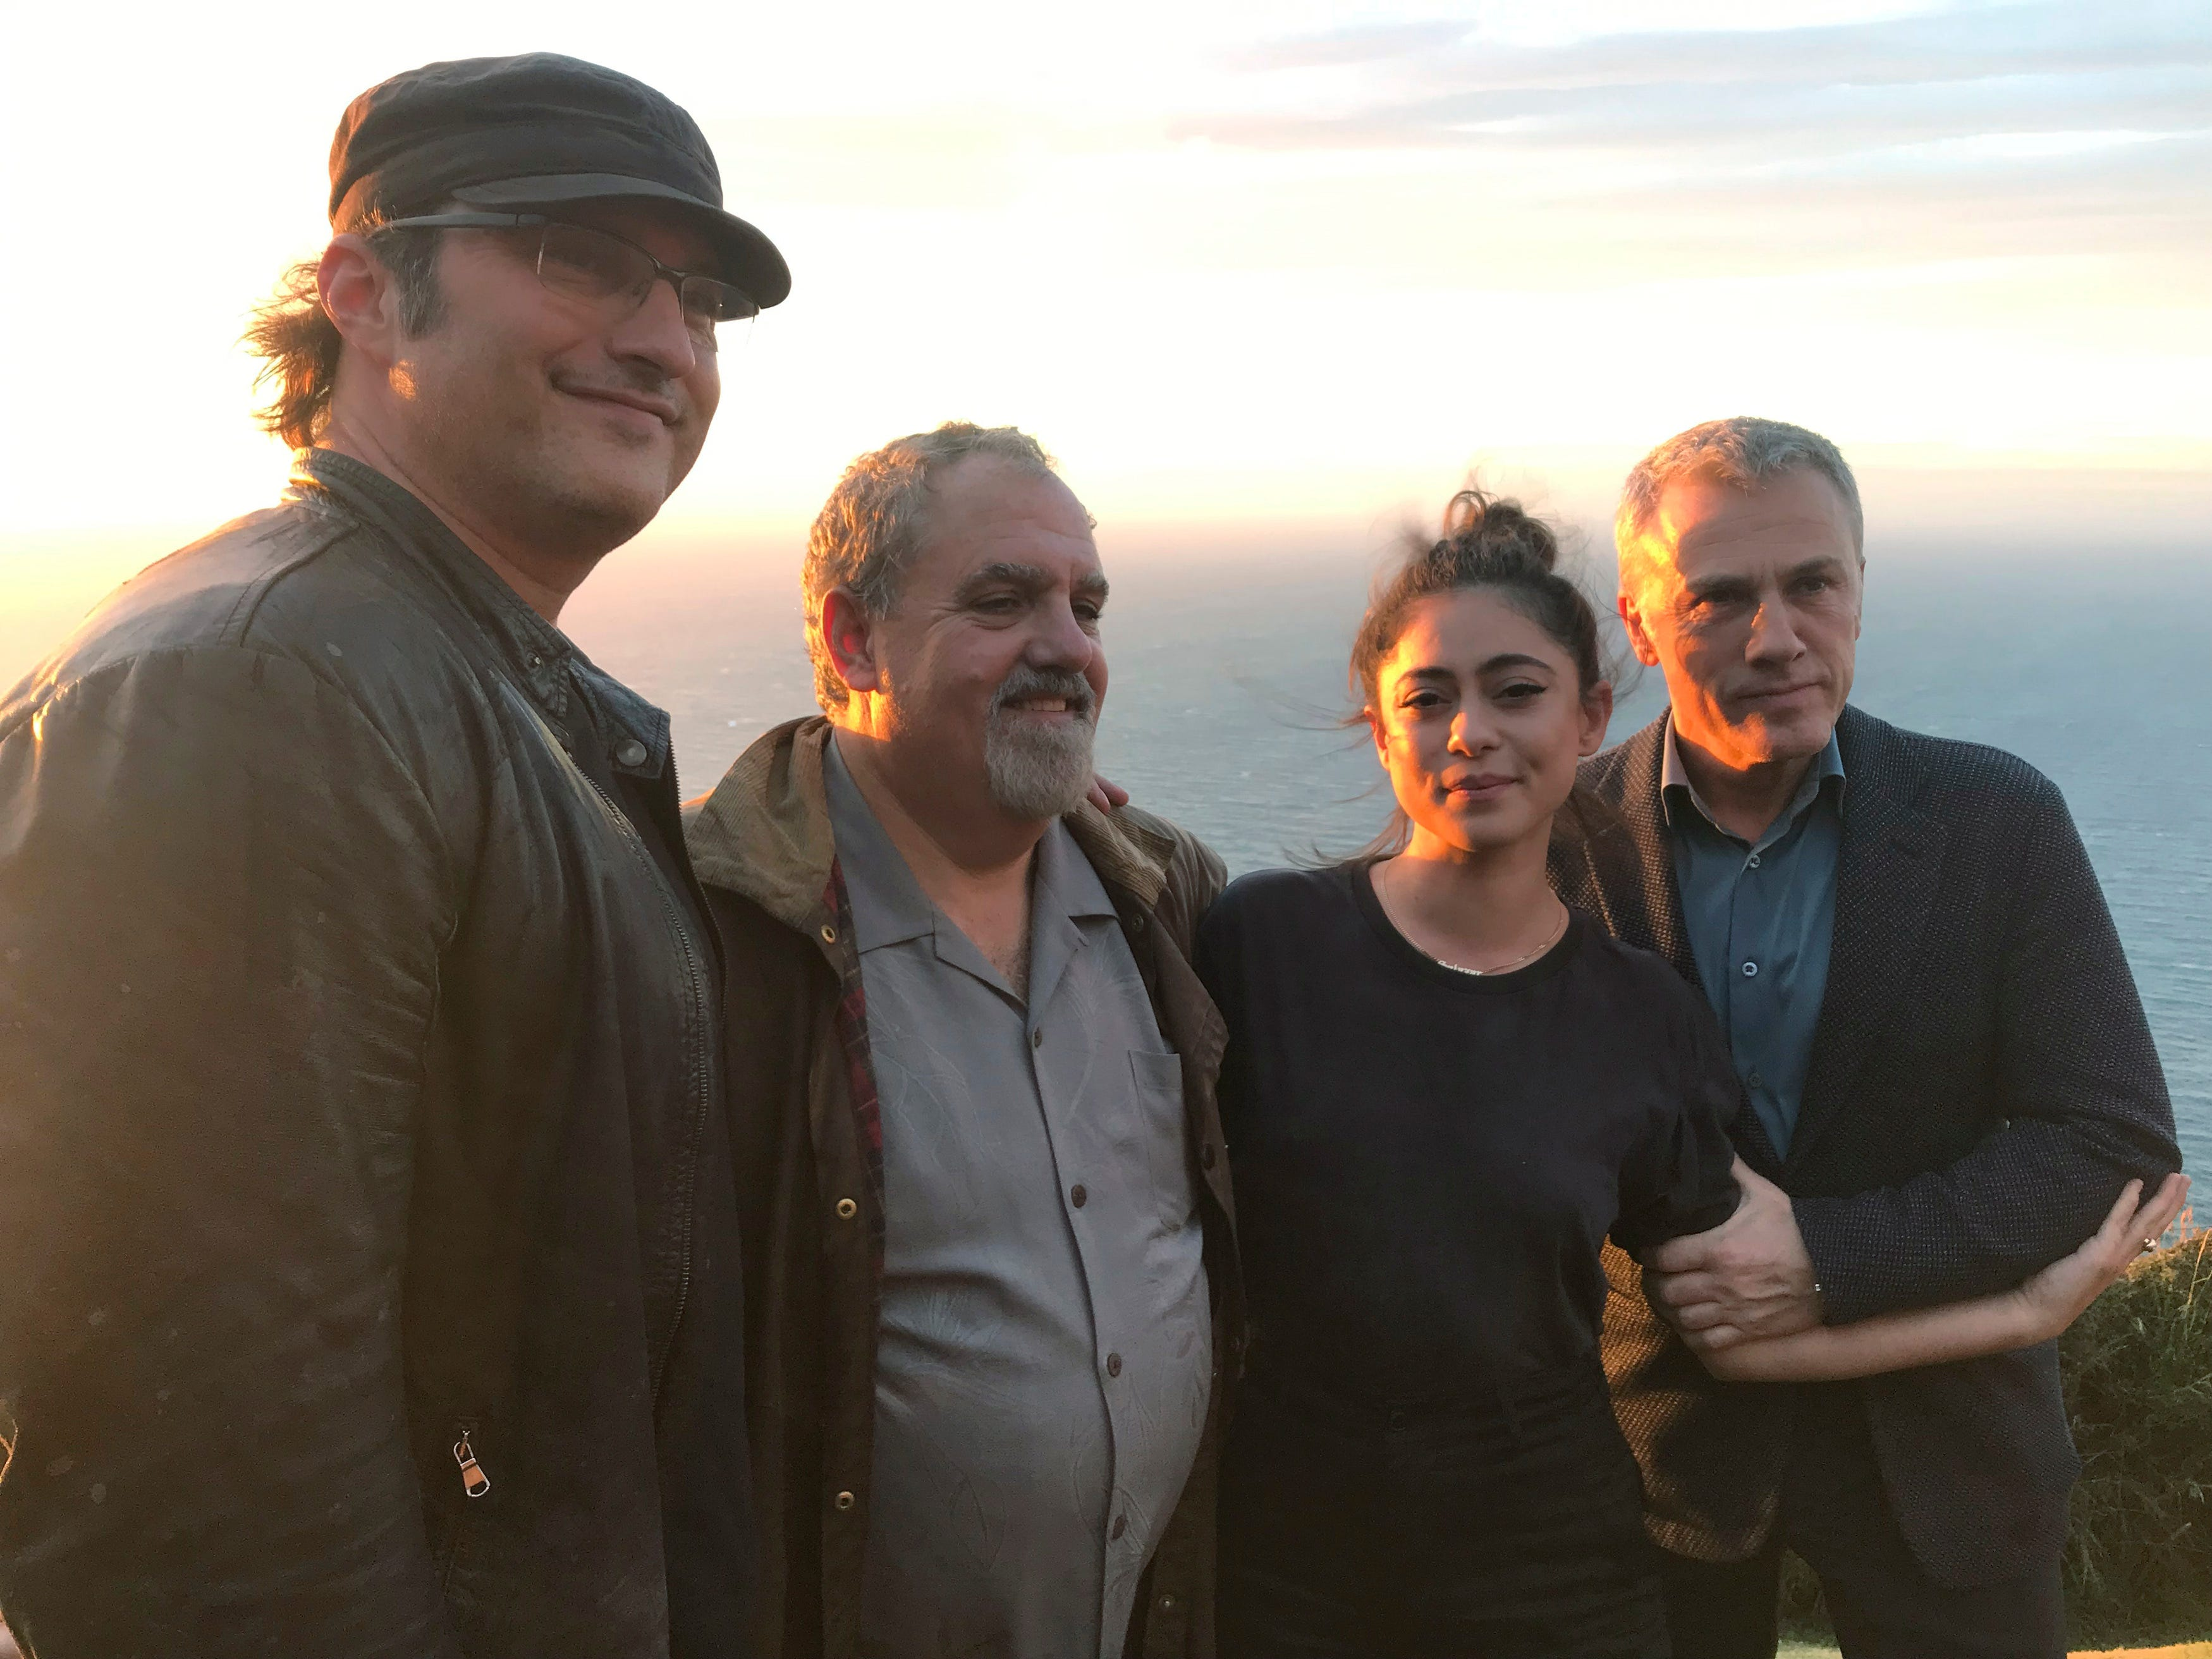 """In this photo taken on Jan. 9, 2019, from left, director Robert Rodriguez, producer Jon Landau, actors Rosa Salazar and Christoph Waltz pose for a photo near Wellington, New Zealand. The movie """"Alita: Battle Angel"""" has been 20 years in the making, and producer Jon Landau is confident it will finally signal a success for Hollywood in a genre that has proved problematic."""